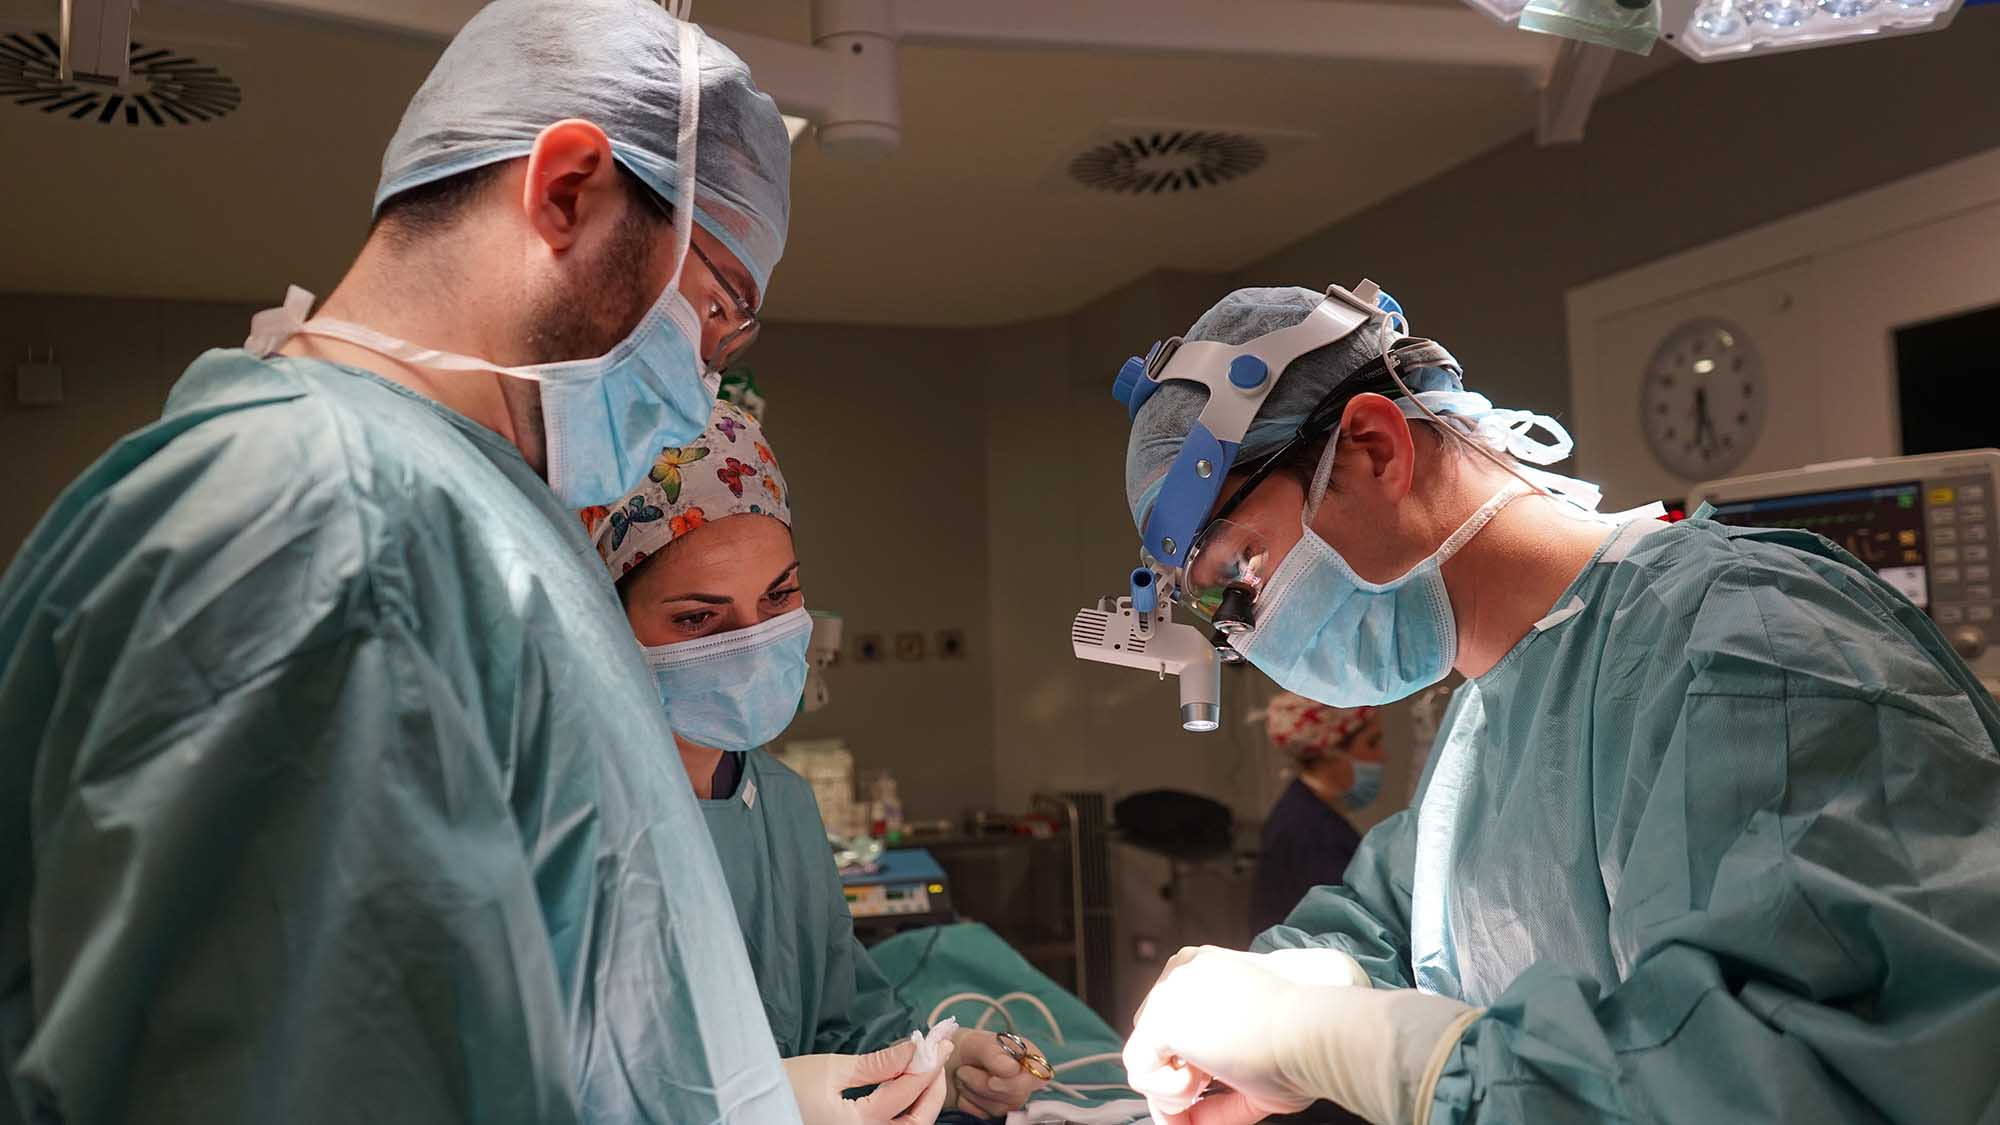 Dr. Macía and his facial feminization team during a procedure